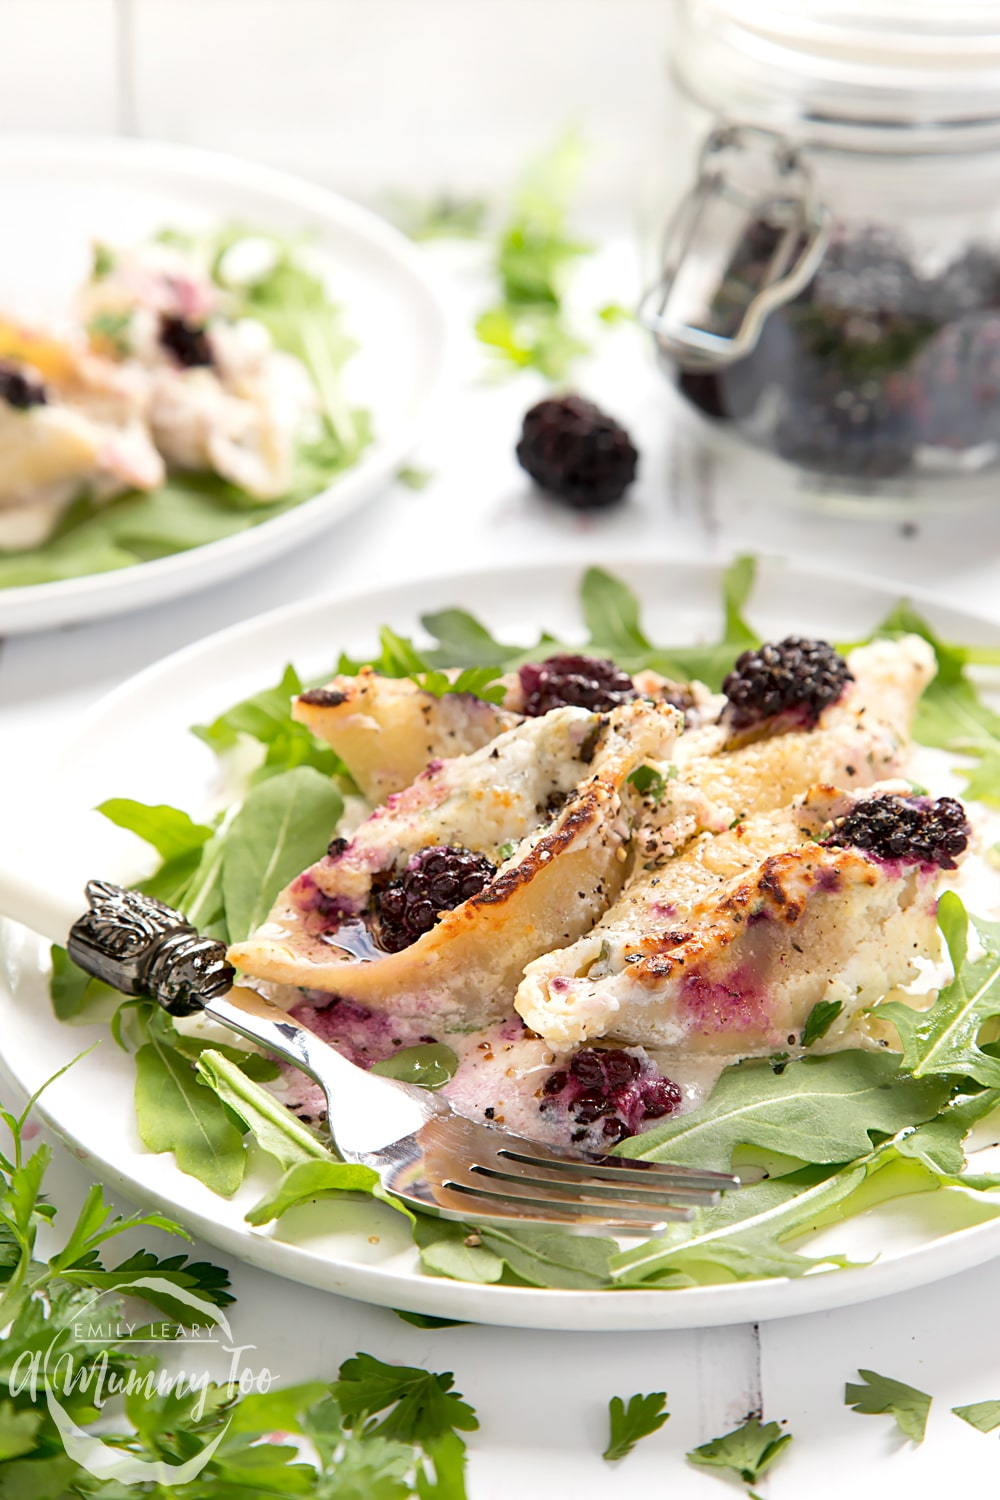 These giant pasta shells are stuffed with a ricotta and blackberry mix for a deliciously different pasta dish!